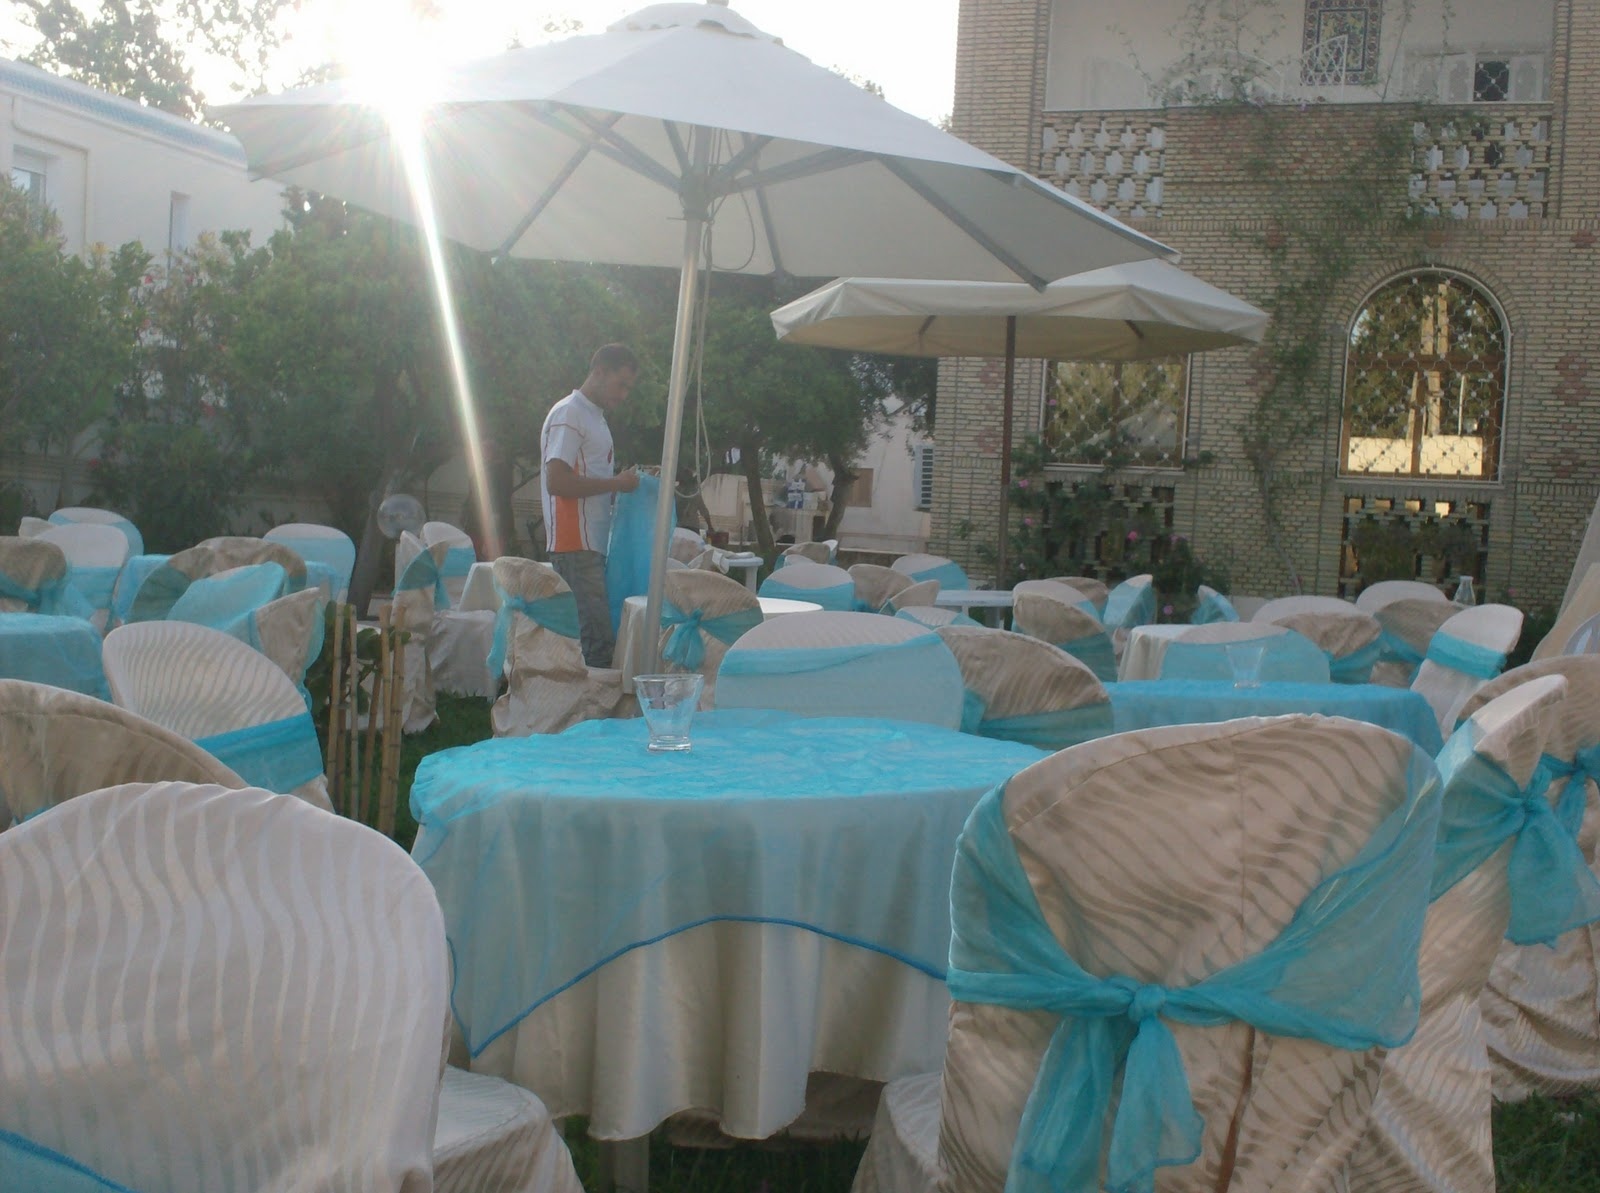 Location Chaise Tunisie Location Materiel De Mariage Art De Table Tentes Podiums